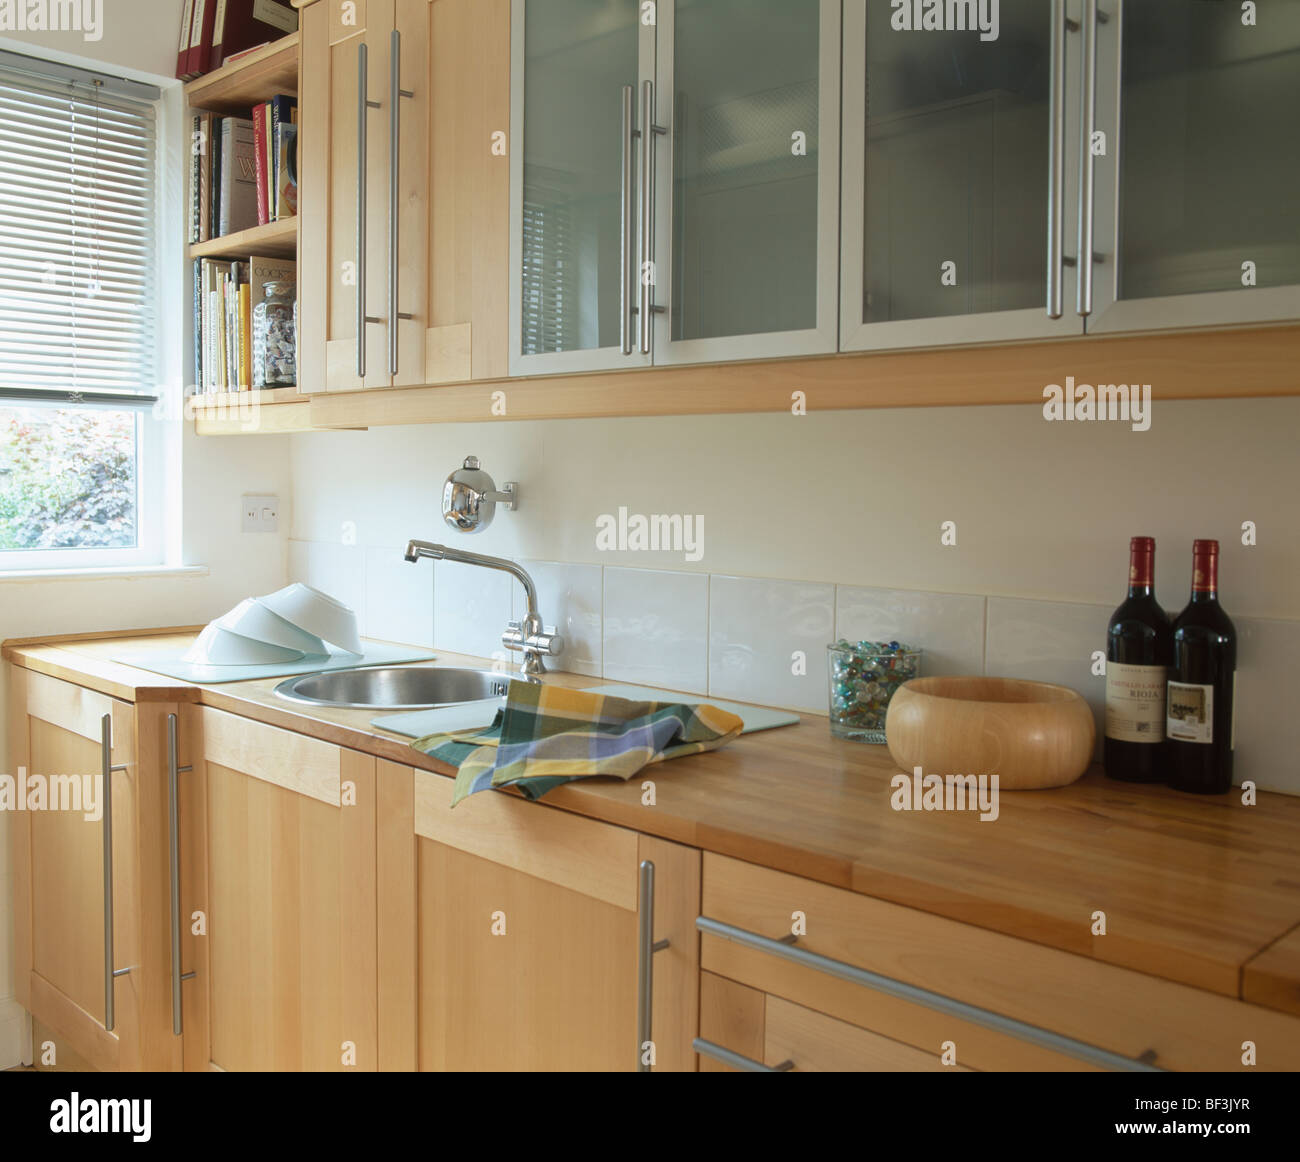 Glazed Kitchen Cabinet Doors: Fitted Cupboards With Glazed Doors Above Sink Set Into